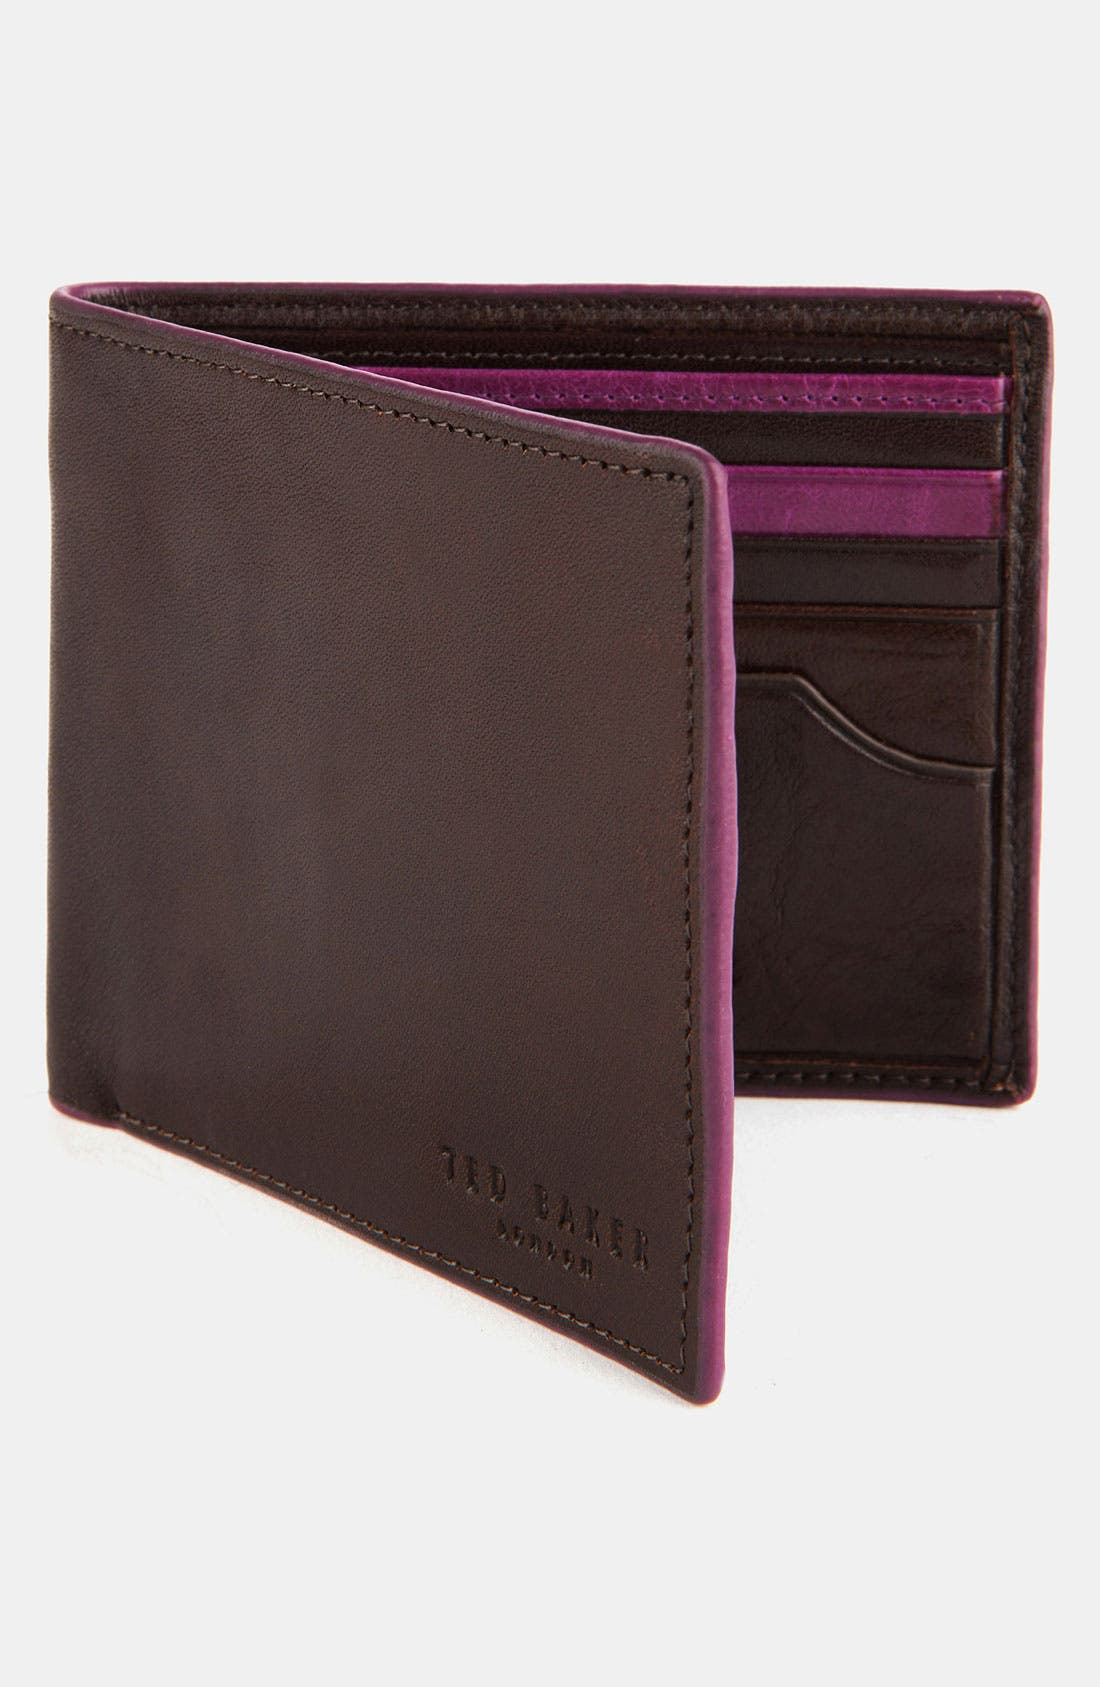 Main Image - Ted Baker London 'Halfnun' Wallet